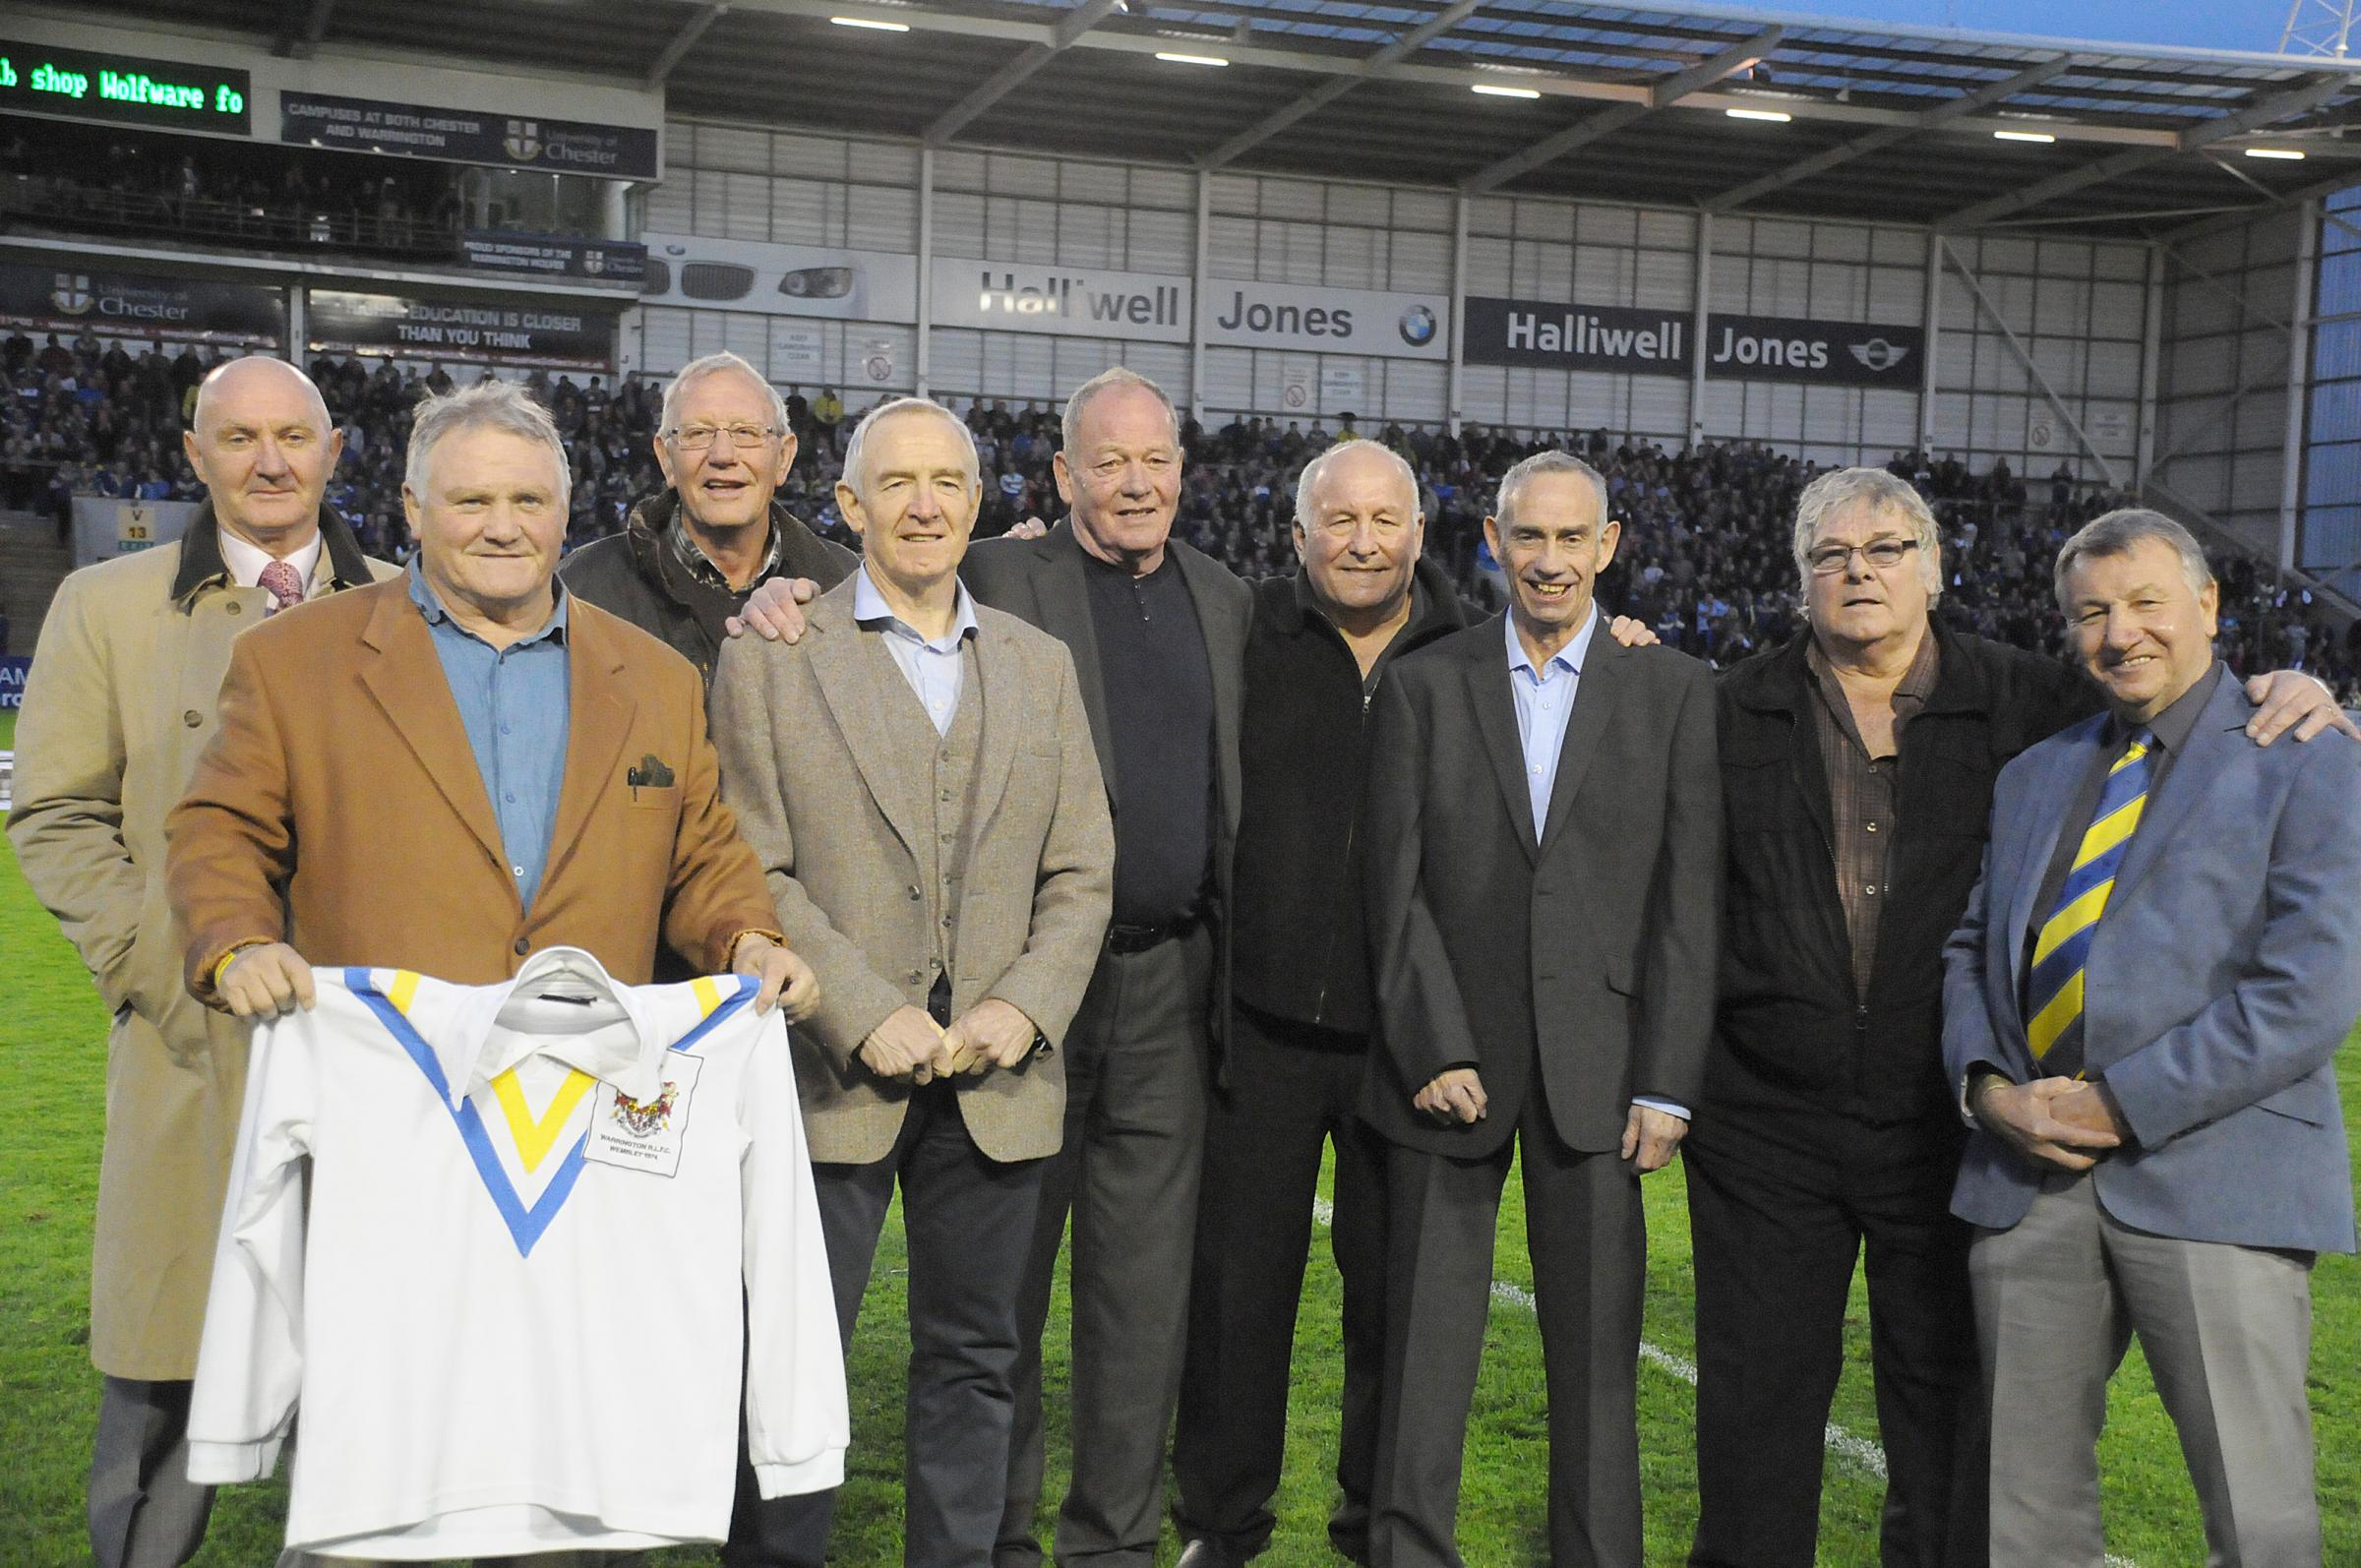 On parade at The Halliwell Jones Stadium on Friday, members of the 1974 squad